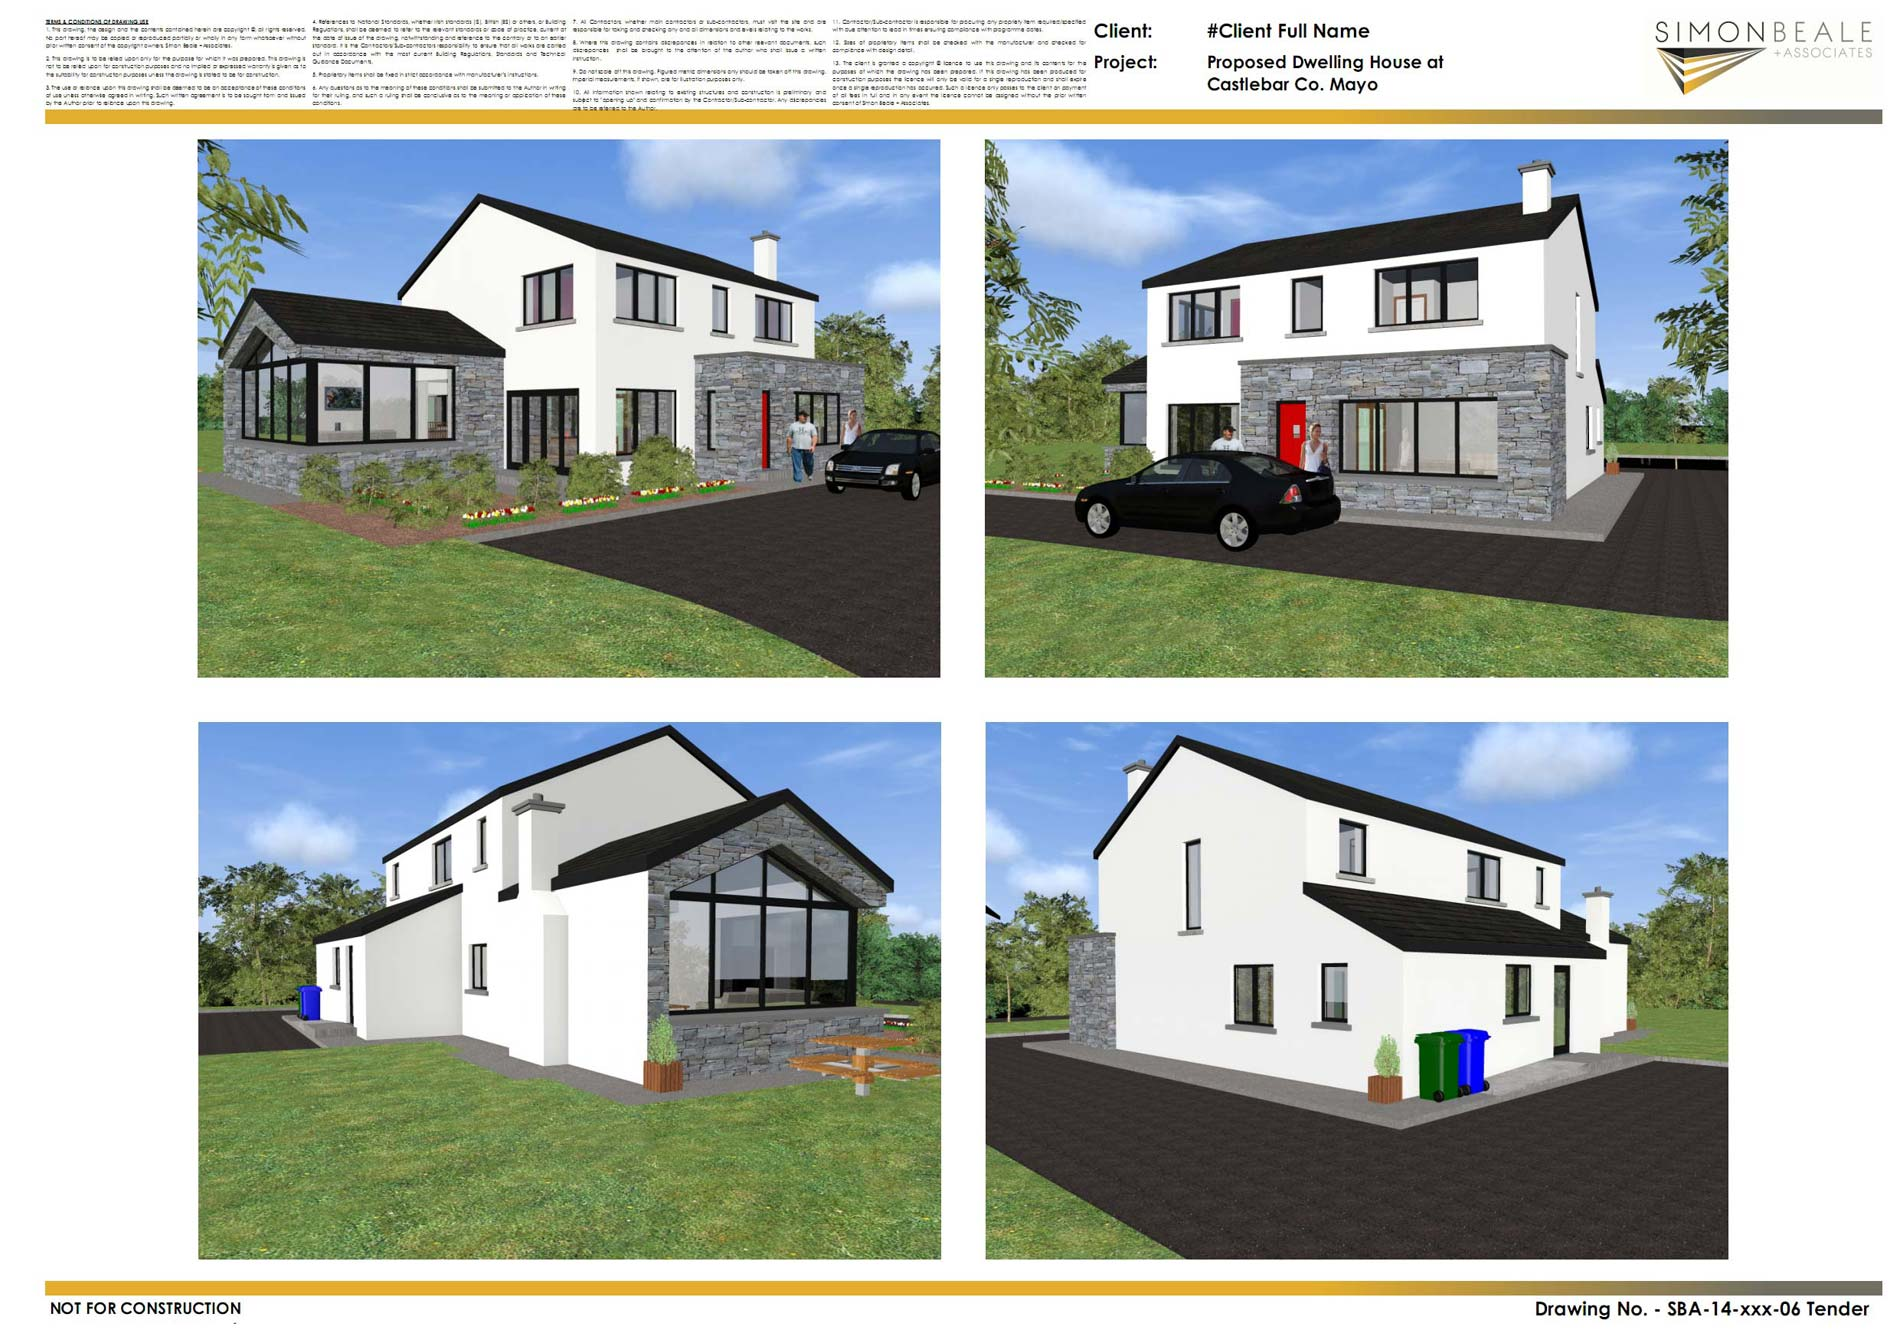 3D Images - Front Elevation Options_pagenumber.001